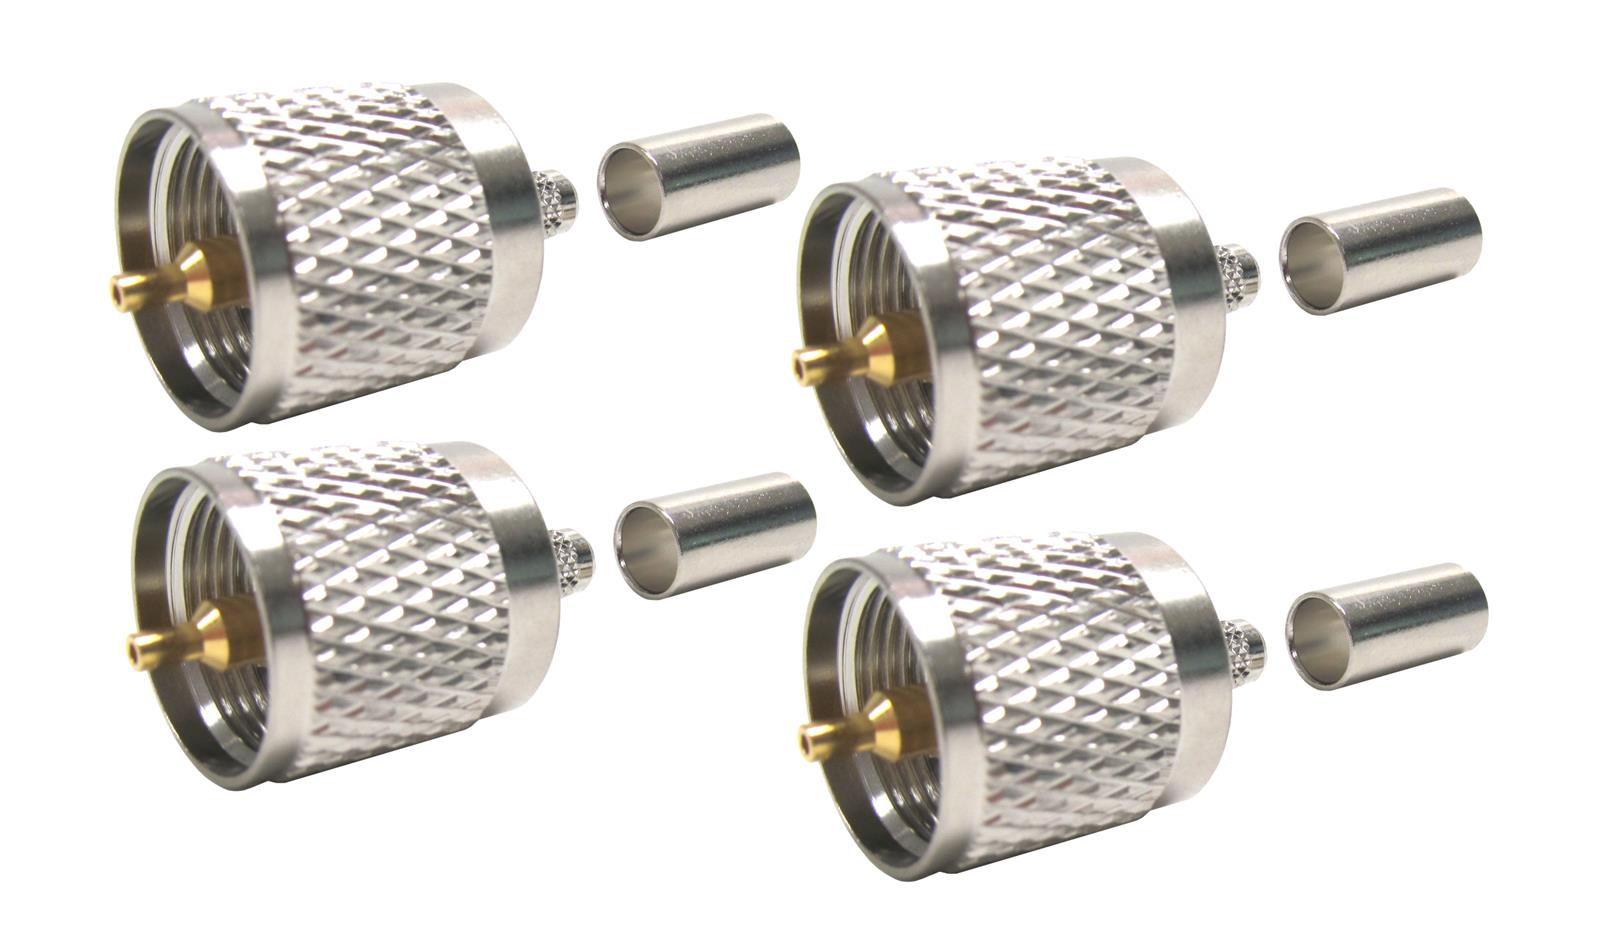 10 Packs PL-259 UHF Male Crimp Connector LMR-195 RG-58 Coaxial Cable